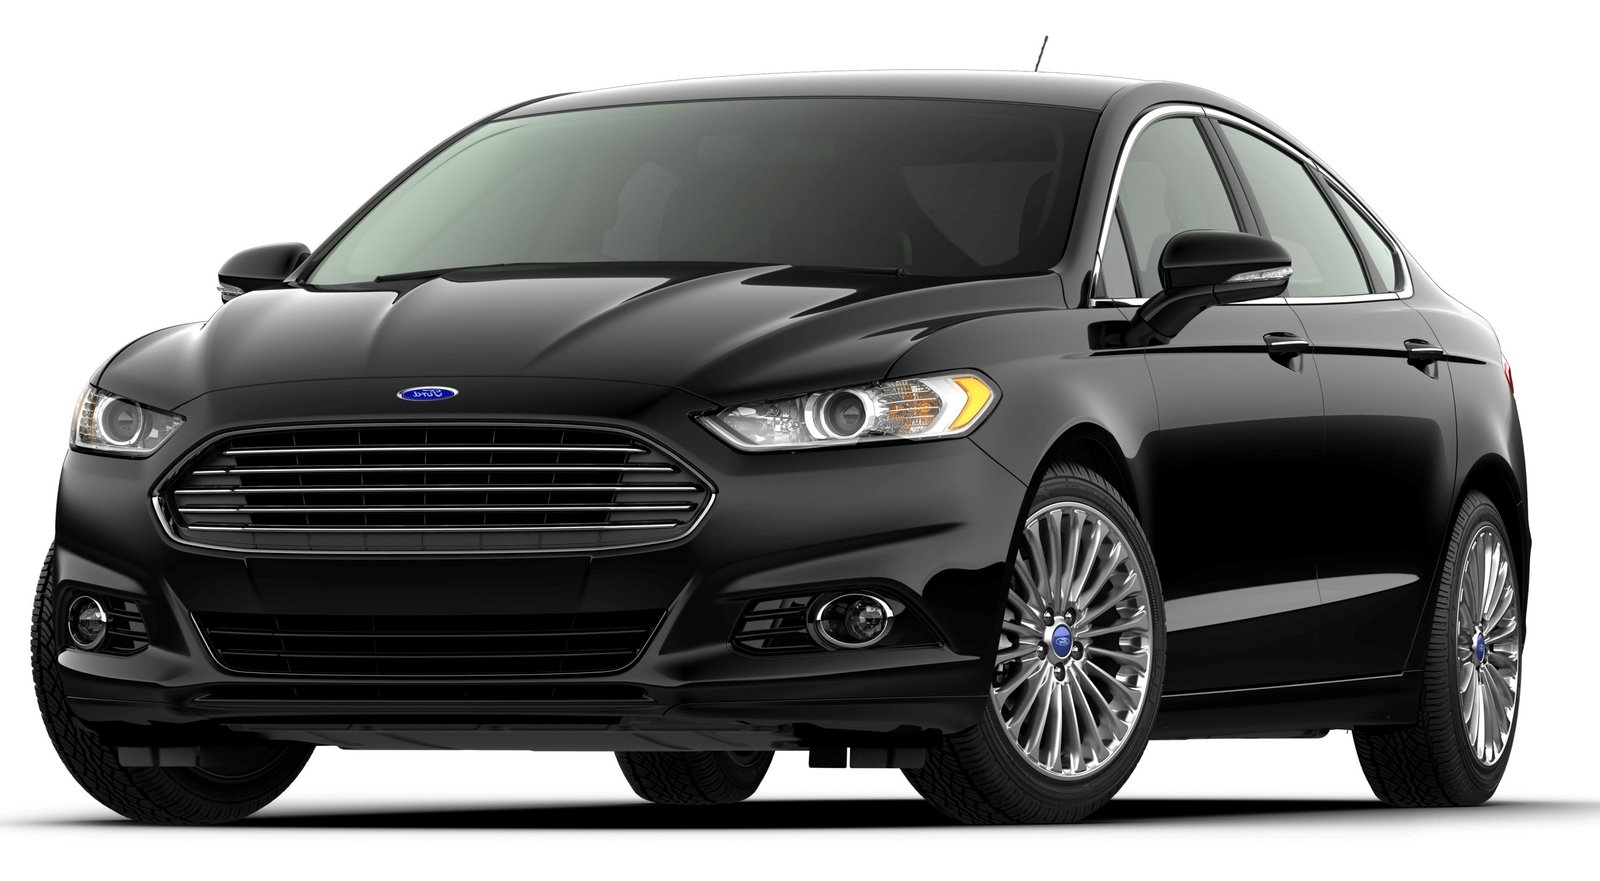 2014 ford fusion picture 525010 car review top speed. Black Bedroom Furniture Sets. Home Design Ideas